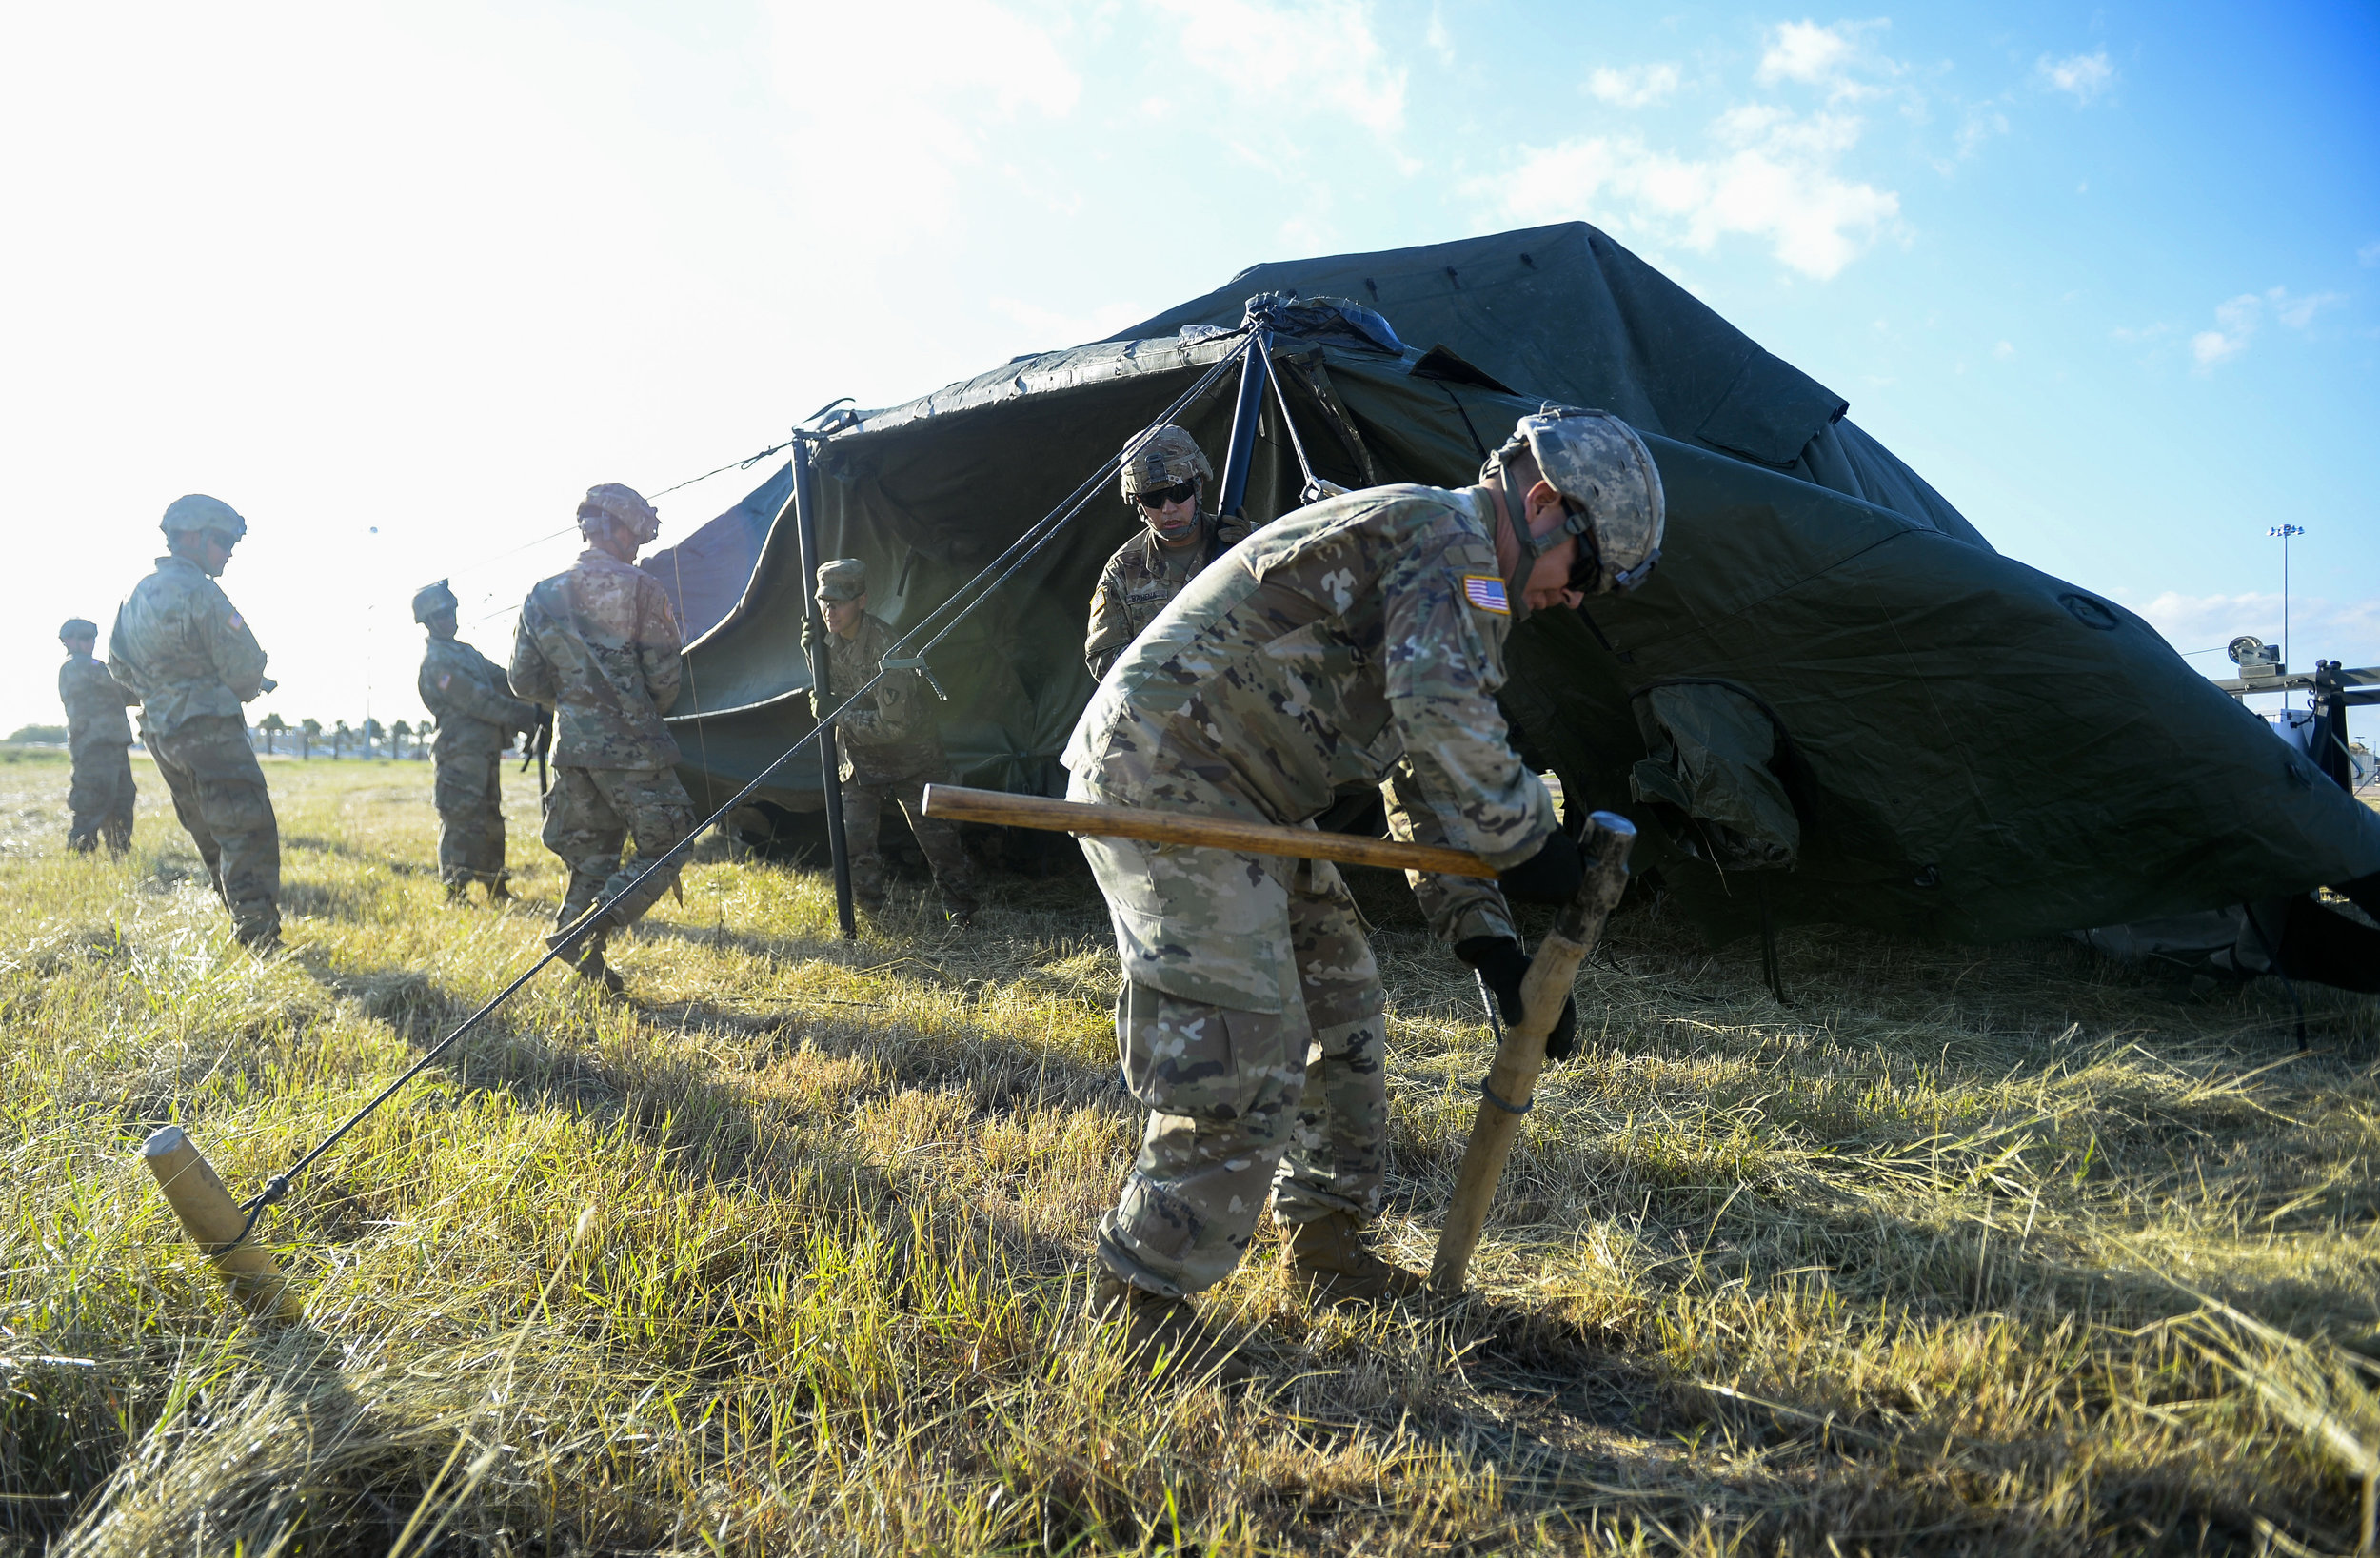 Soldiers with the 19th Engineering Battalion, 41st Clearance Company, Fort Riley, KS., build tents and set-up camp grounds near the Mexican border at Donna, TX., port of entry, in support of Operation FAITHFUL PATRIOT November 3, 2018. (U.S. Air Force photo by SrA Alexandra Minor)